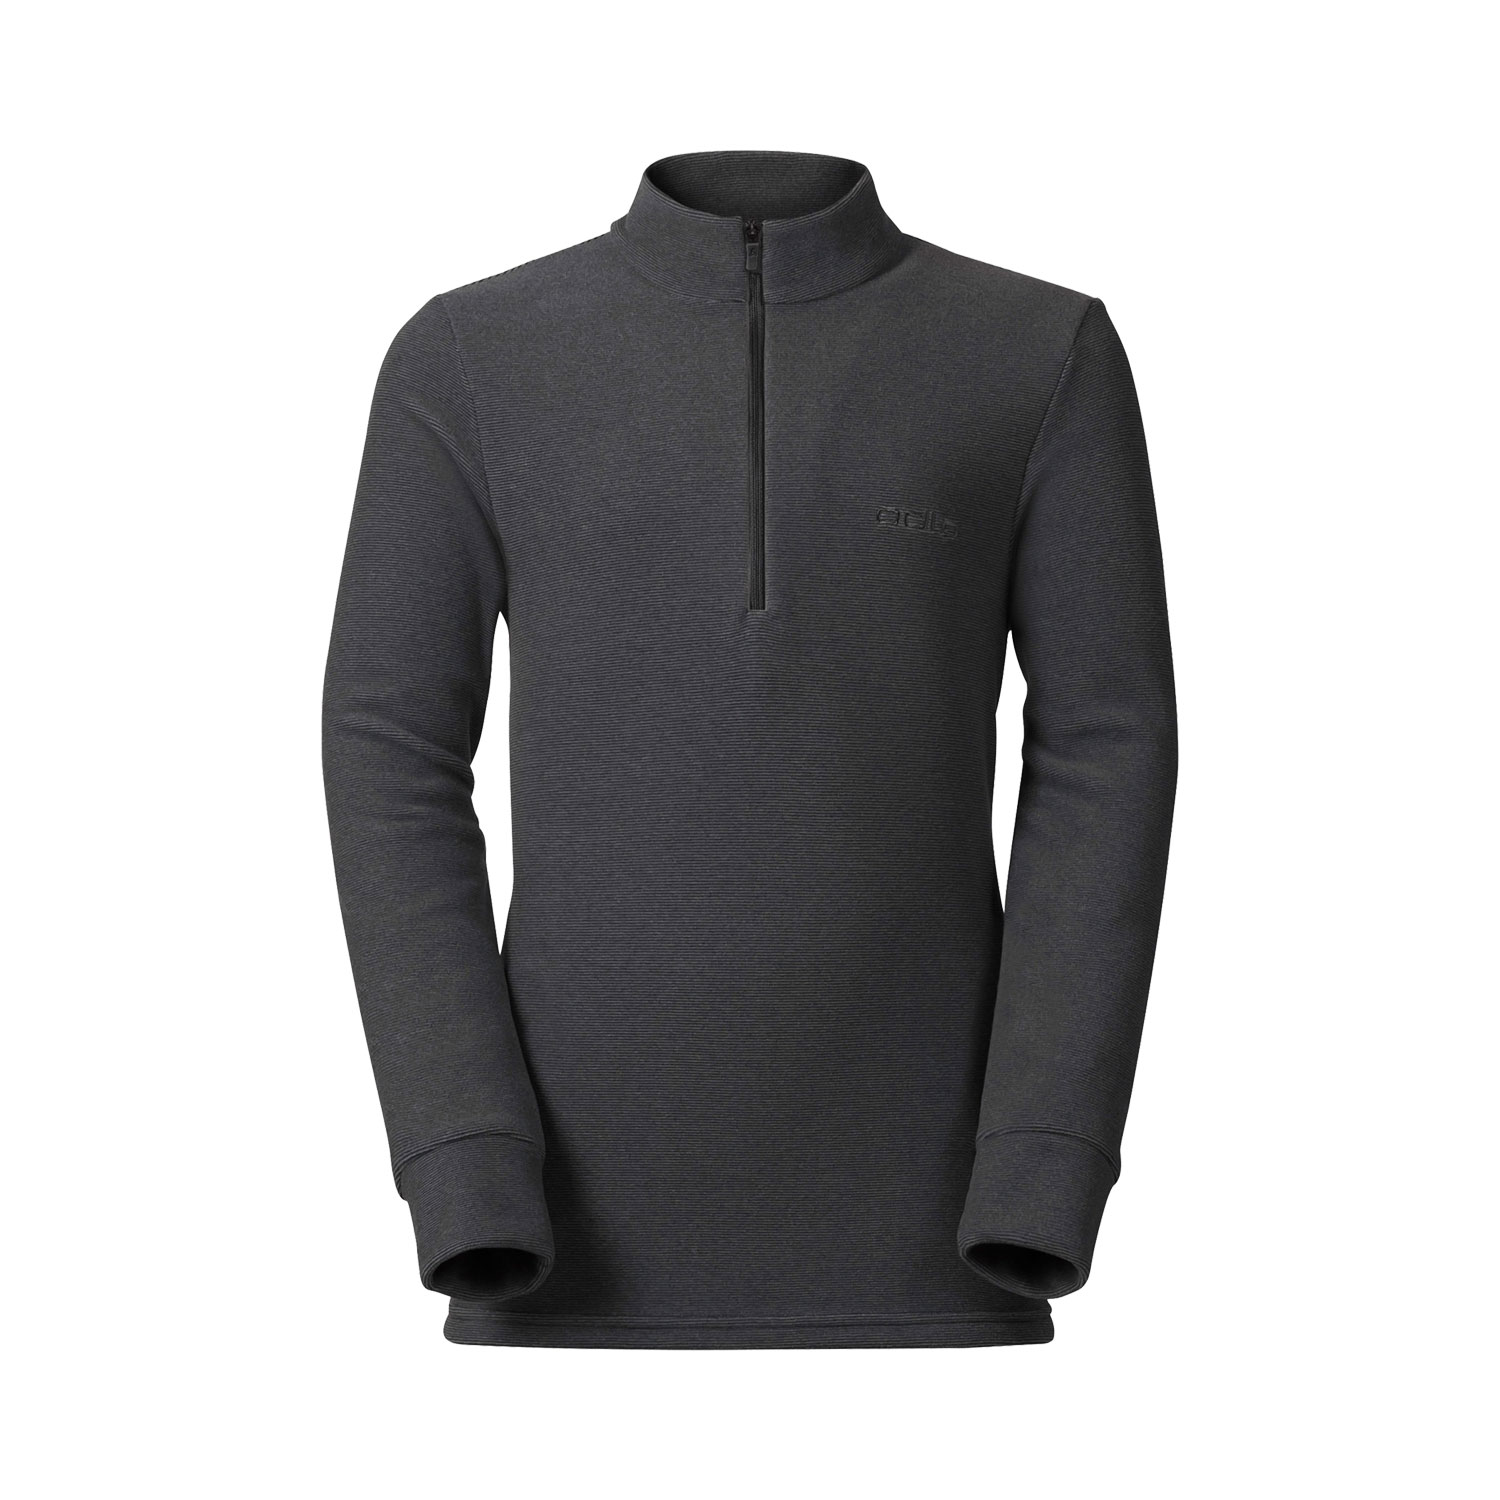 Odlo Midlayer 1/2 Zip Kinder Skirolli